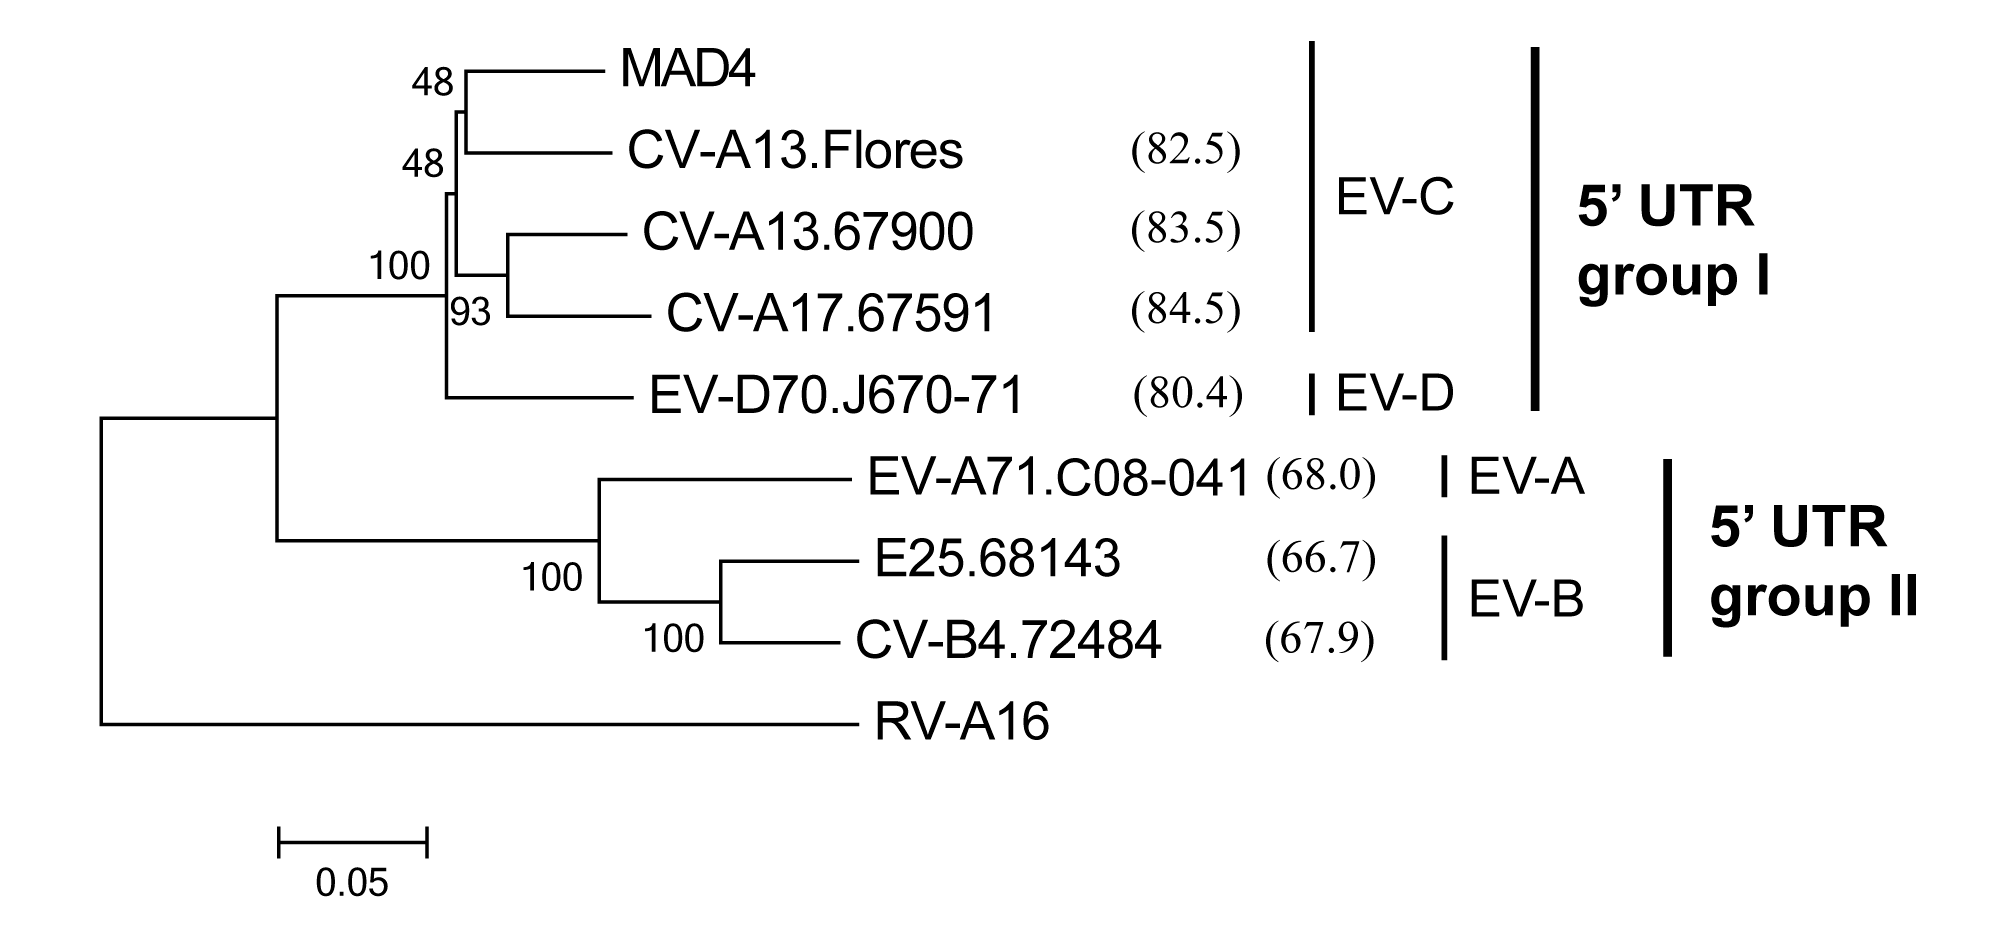 Phylogenetic relationships between the 5' UTR sequences of the eight 5' partners.